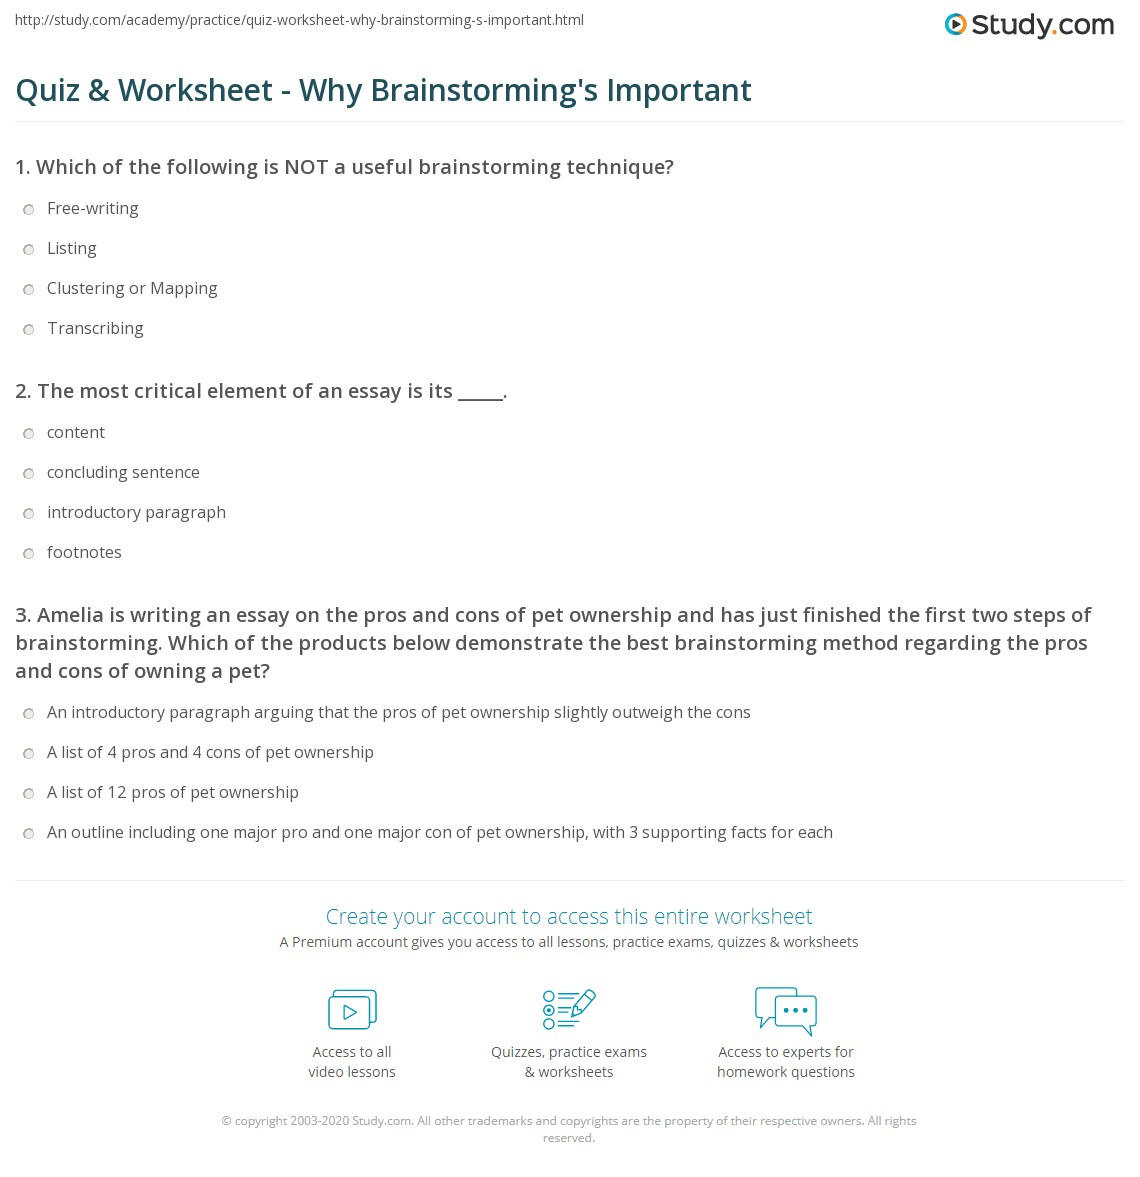 Quiz Worksheet Why Brainstorming 39 S Important Study Com